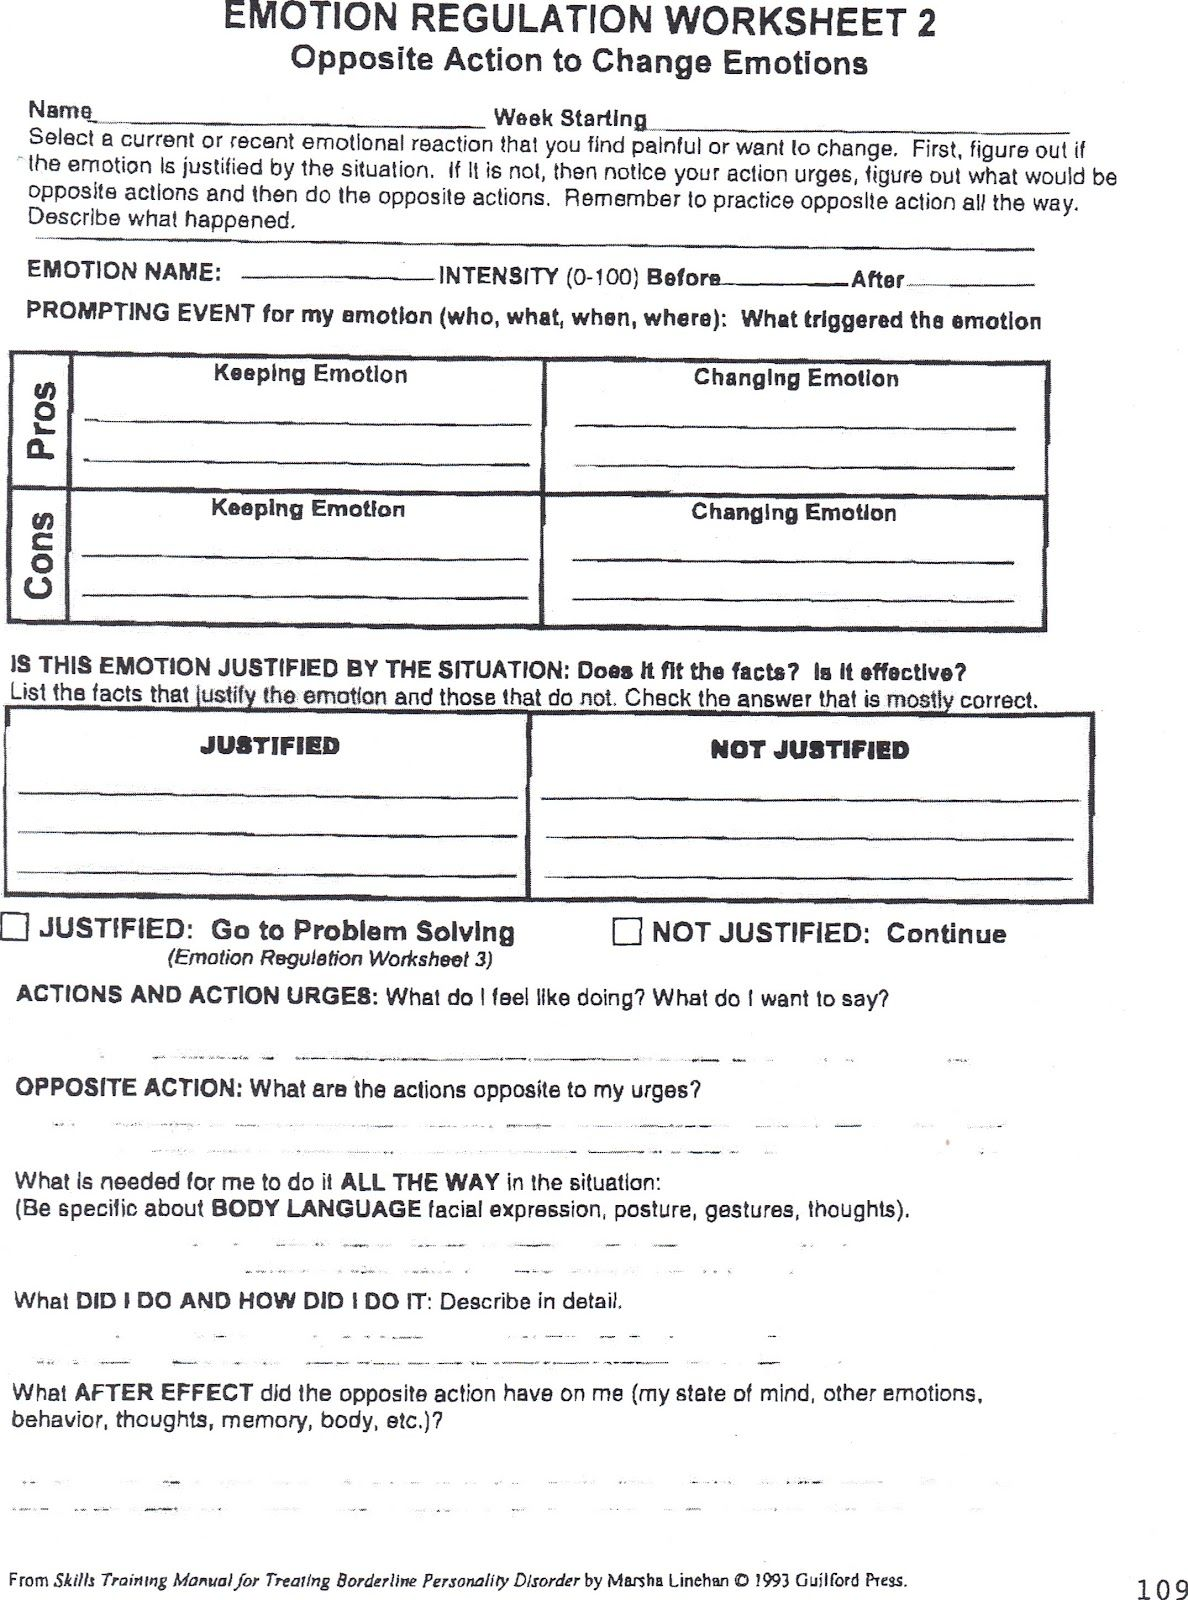 Impulse Control Disorder Treatment Worksheets